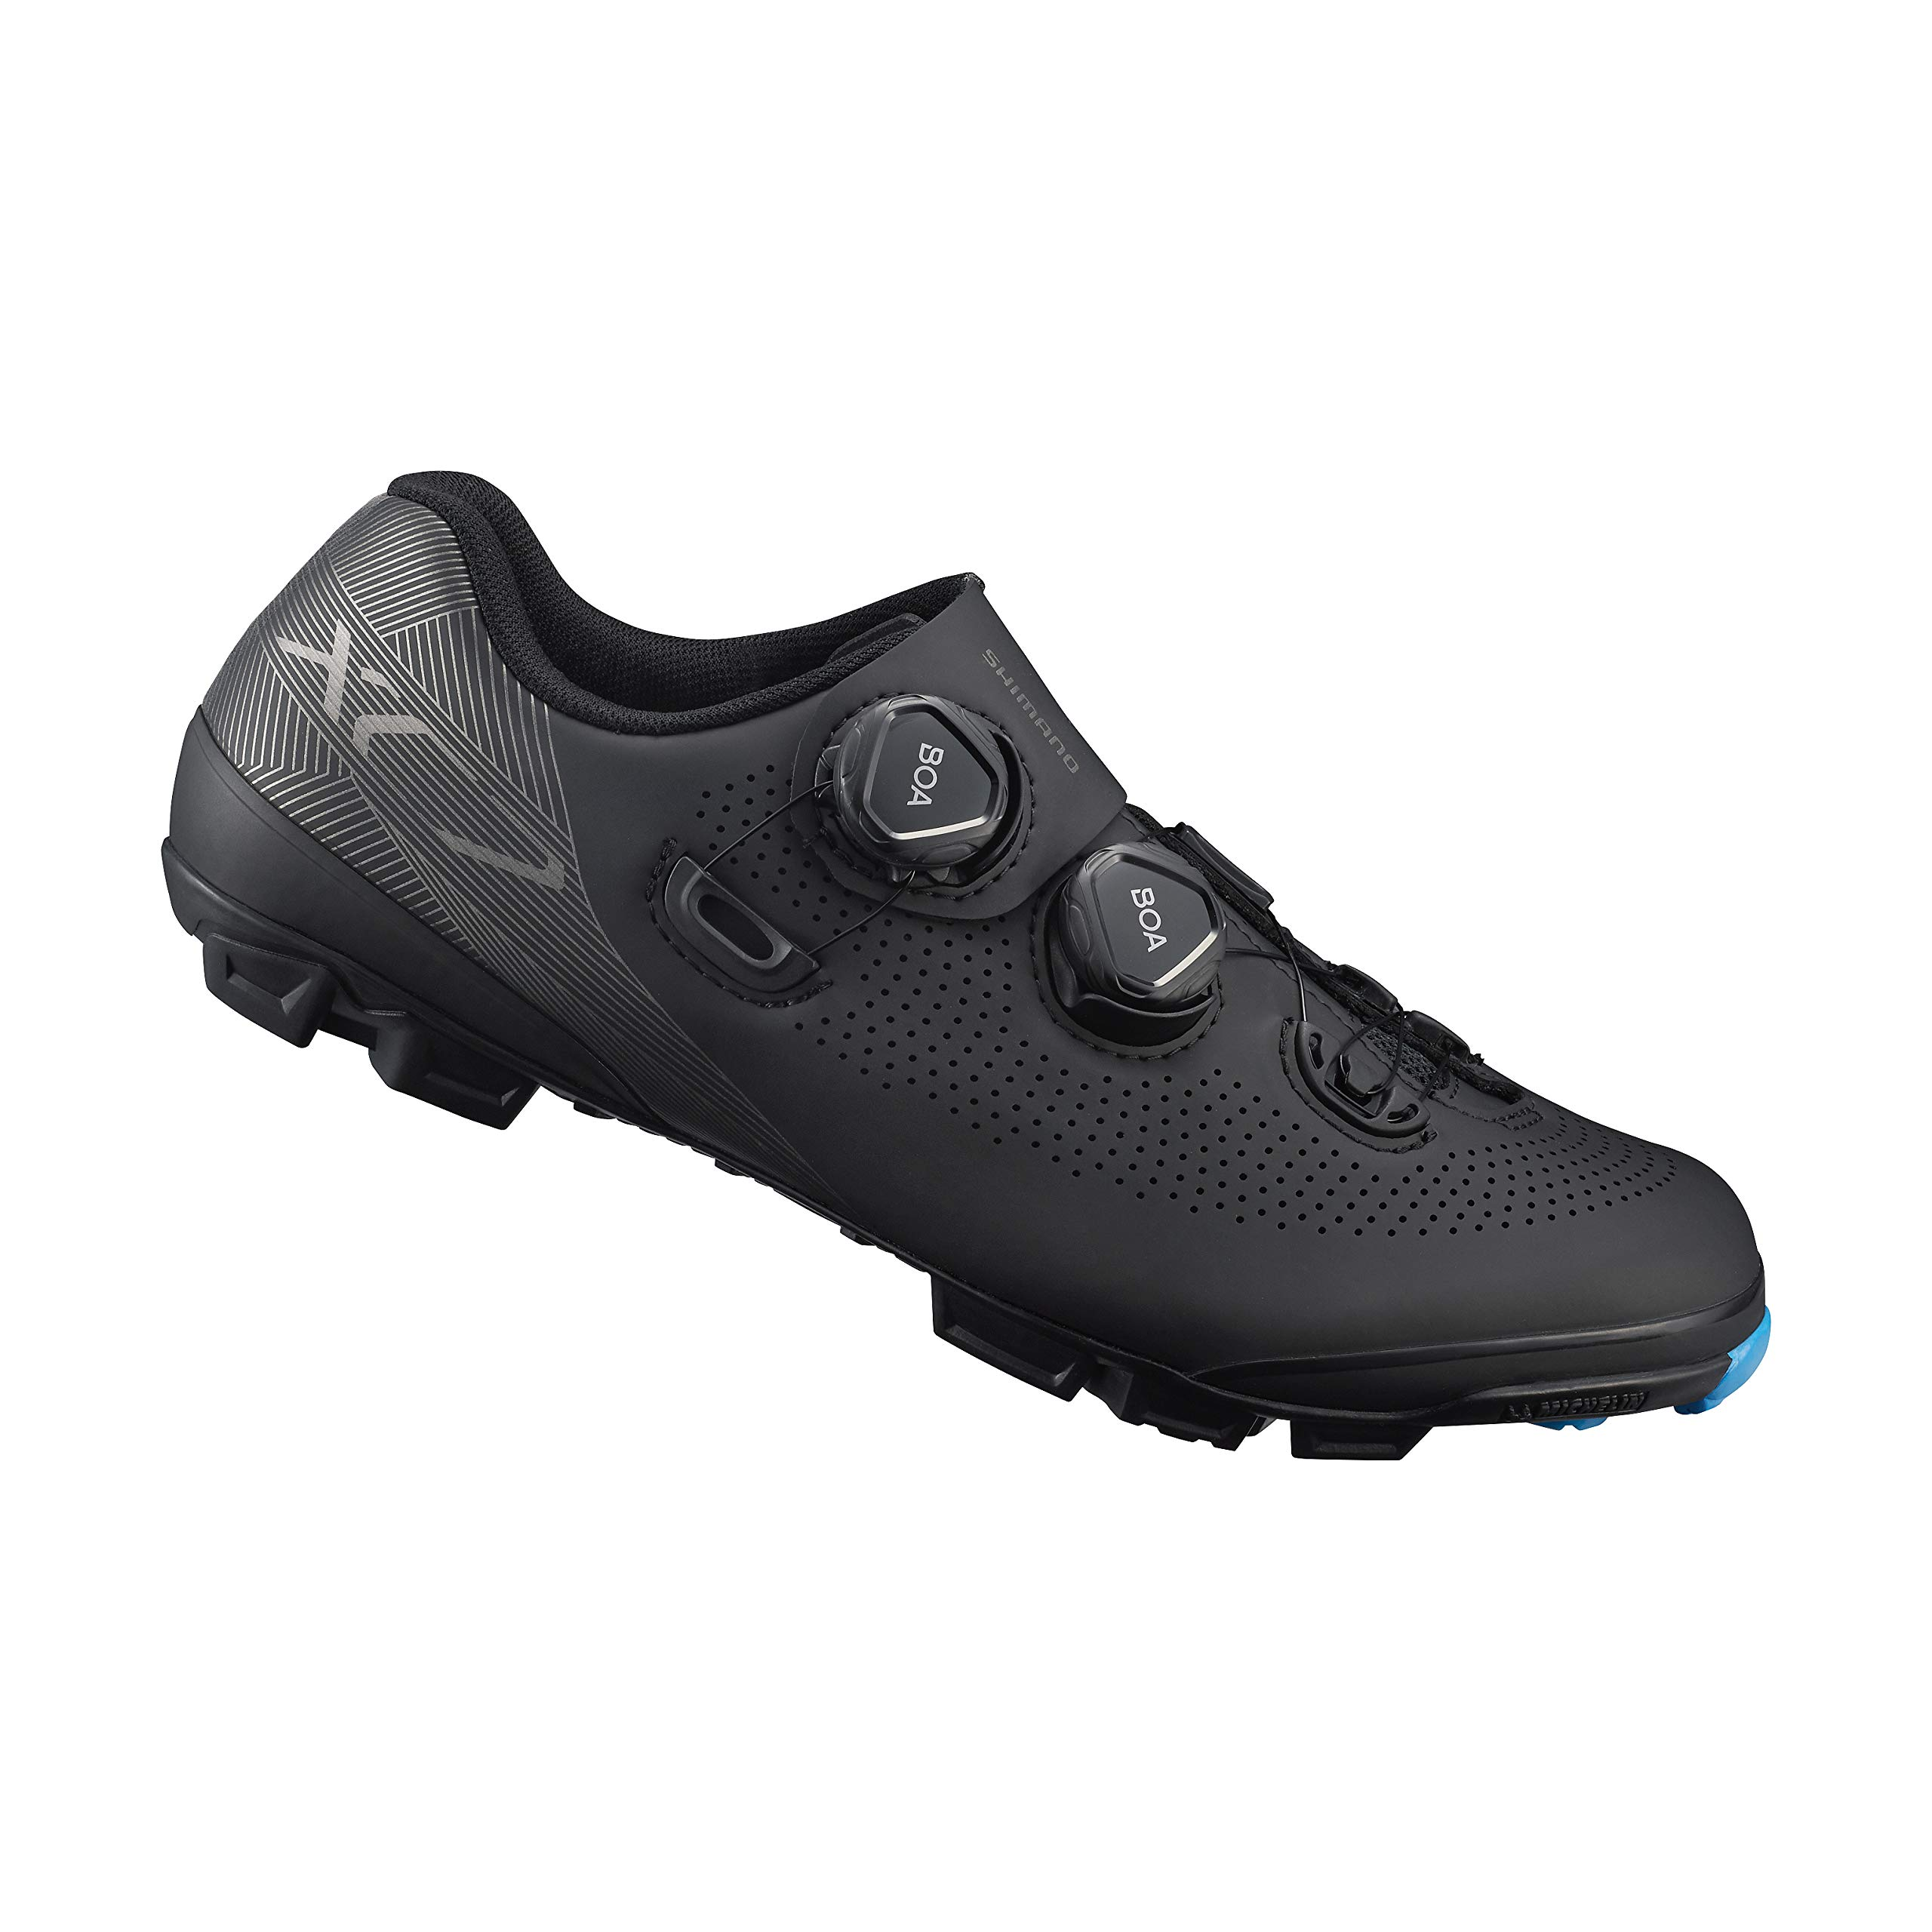 SHIMANO SH-XC701 LSG Series Off-Road Racing; XC Race; Cycling Bicycle Shoes; Black; 43 by SHIMANO